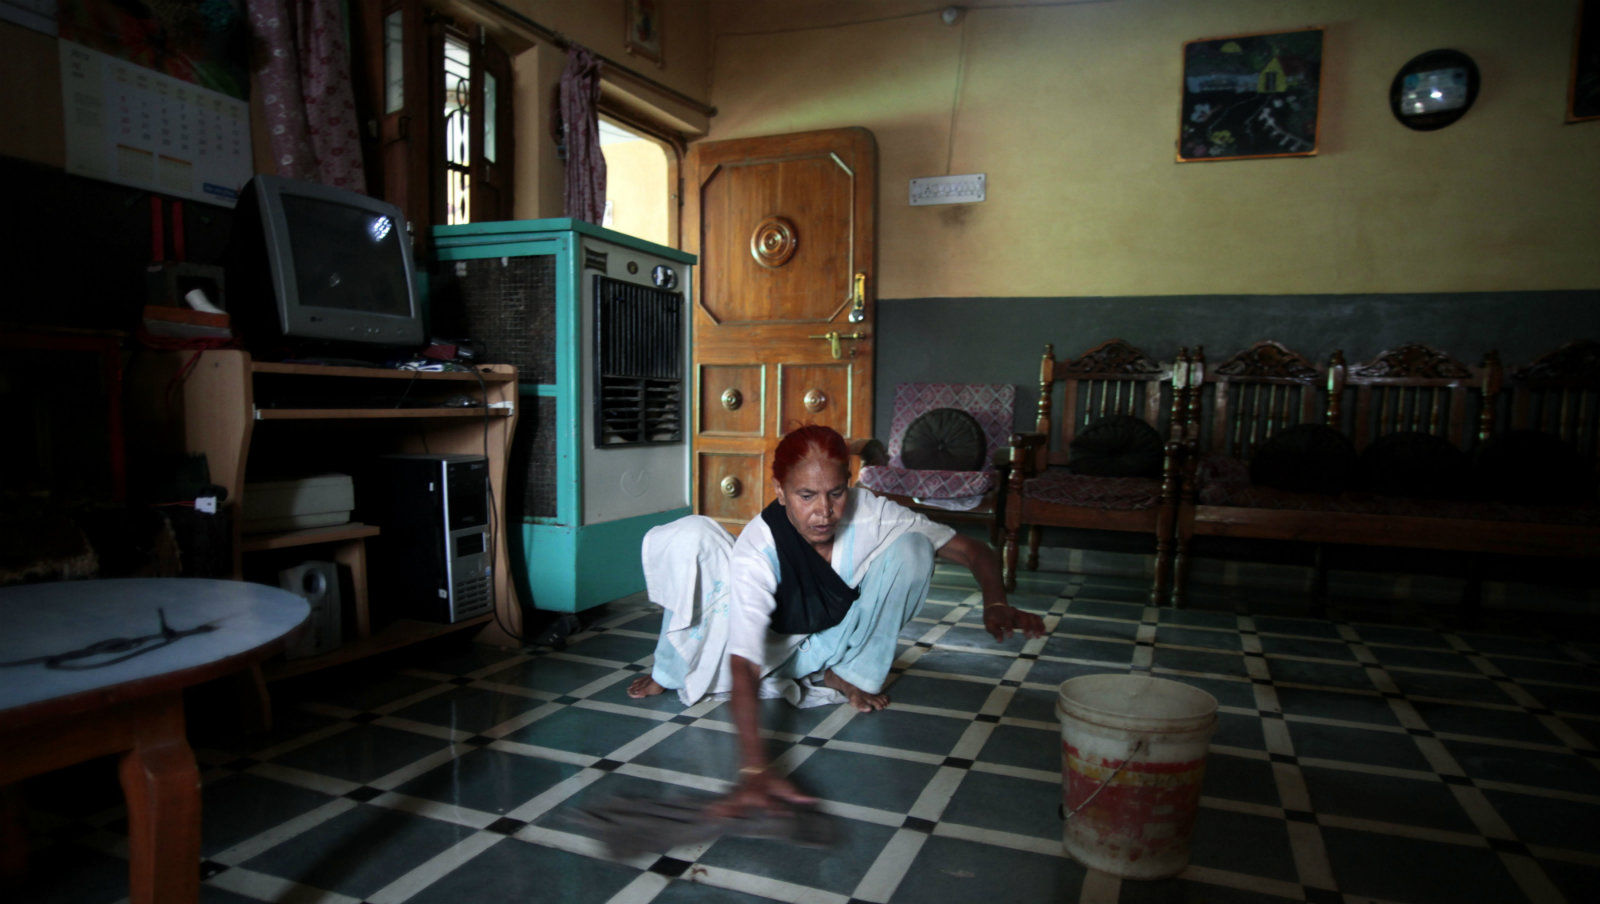 In this May 10, 2012 photo, Fatima Munshi, working as domestic help, cleans a floor in a home in Khandwa, India. Saroo Brierley, 30, was reunited with his biological mother, Munshi, in February 2012, 25 years after an ill-fated train ride left him an orphan on the streets of Calcutta.